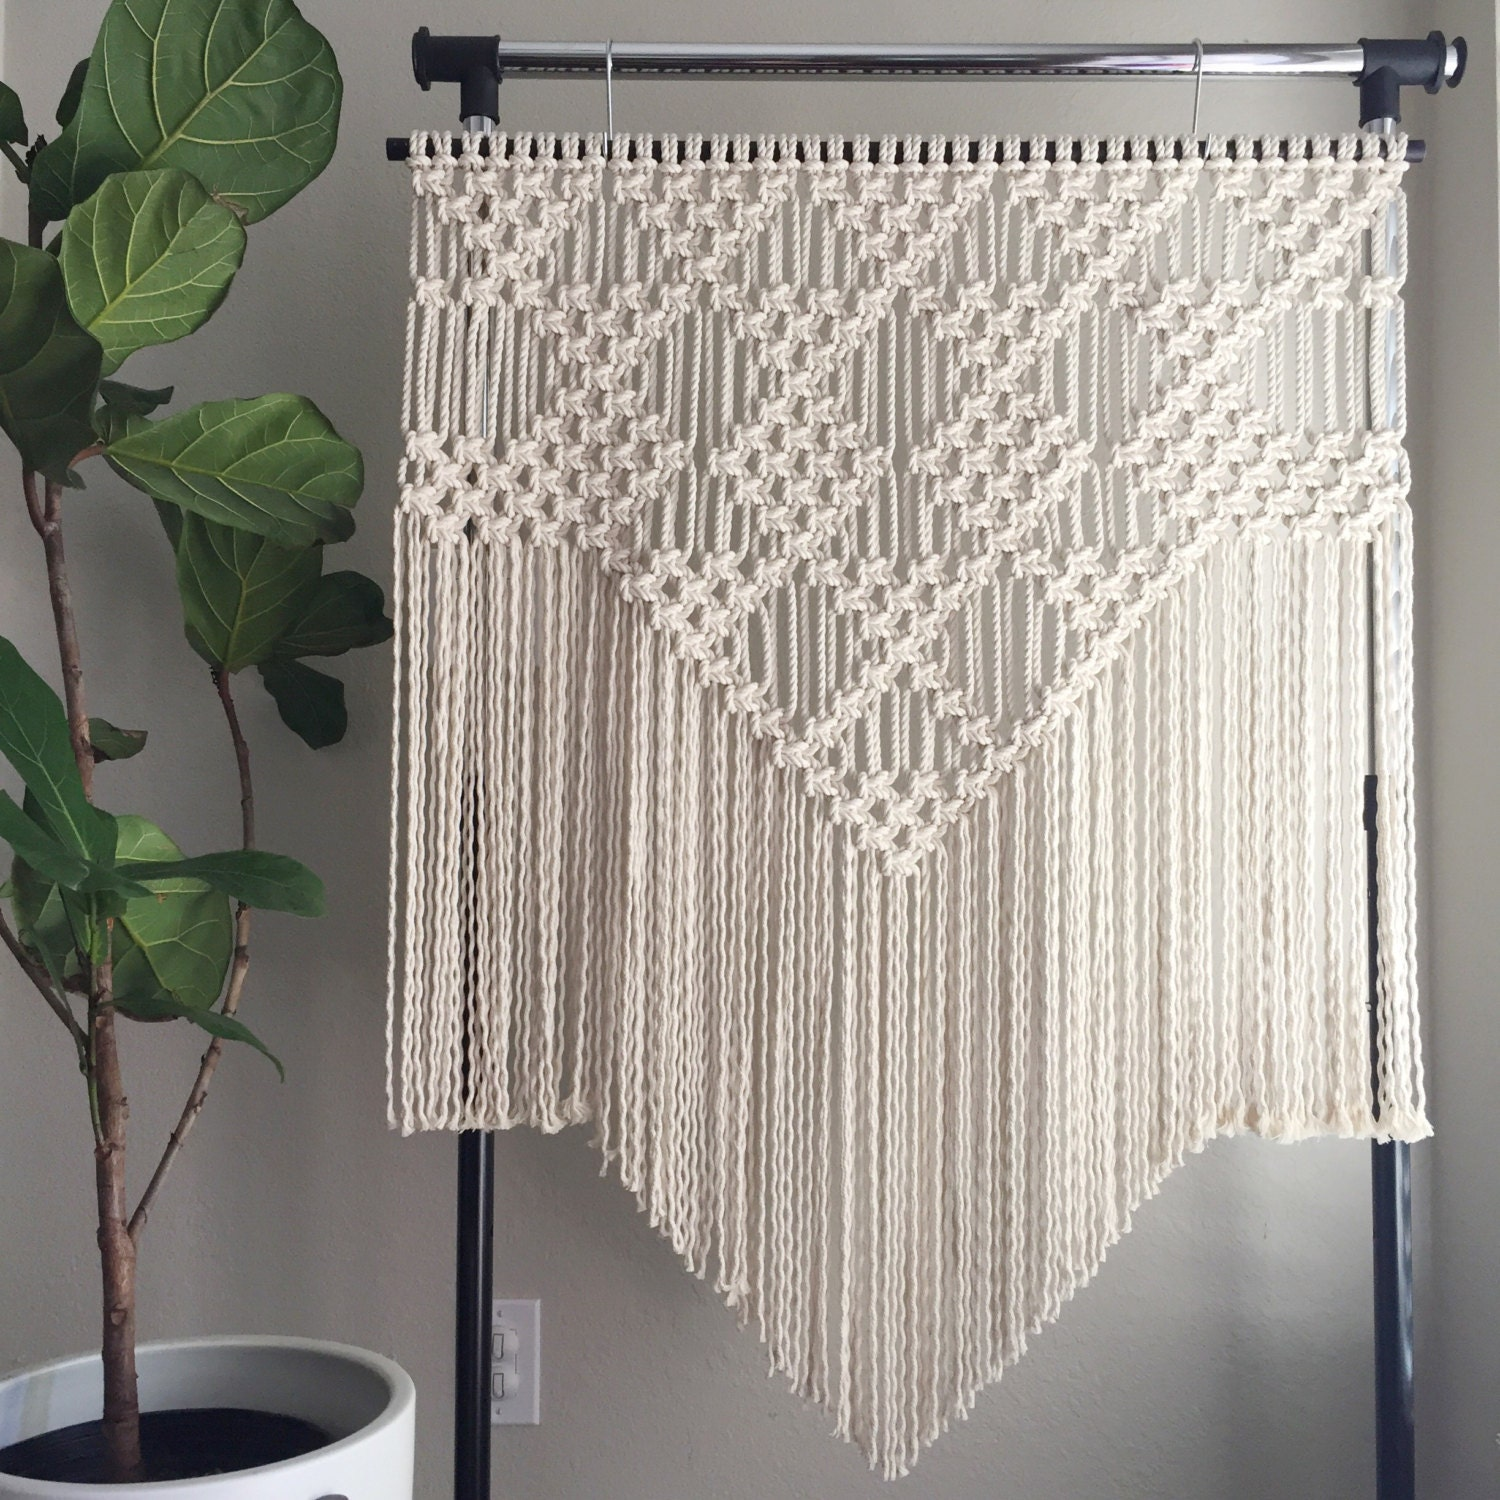 Macrame Patterns Macrame Pattern Large Macrame Wall Hanging